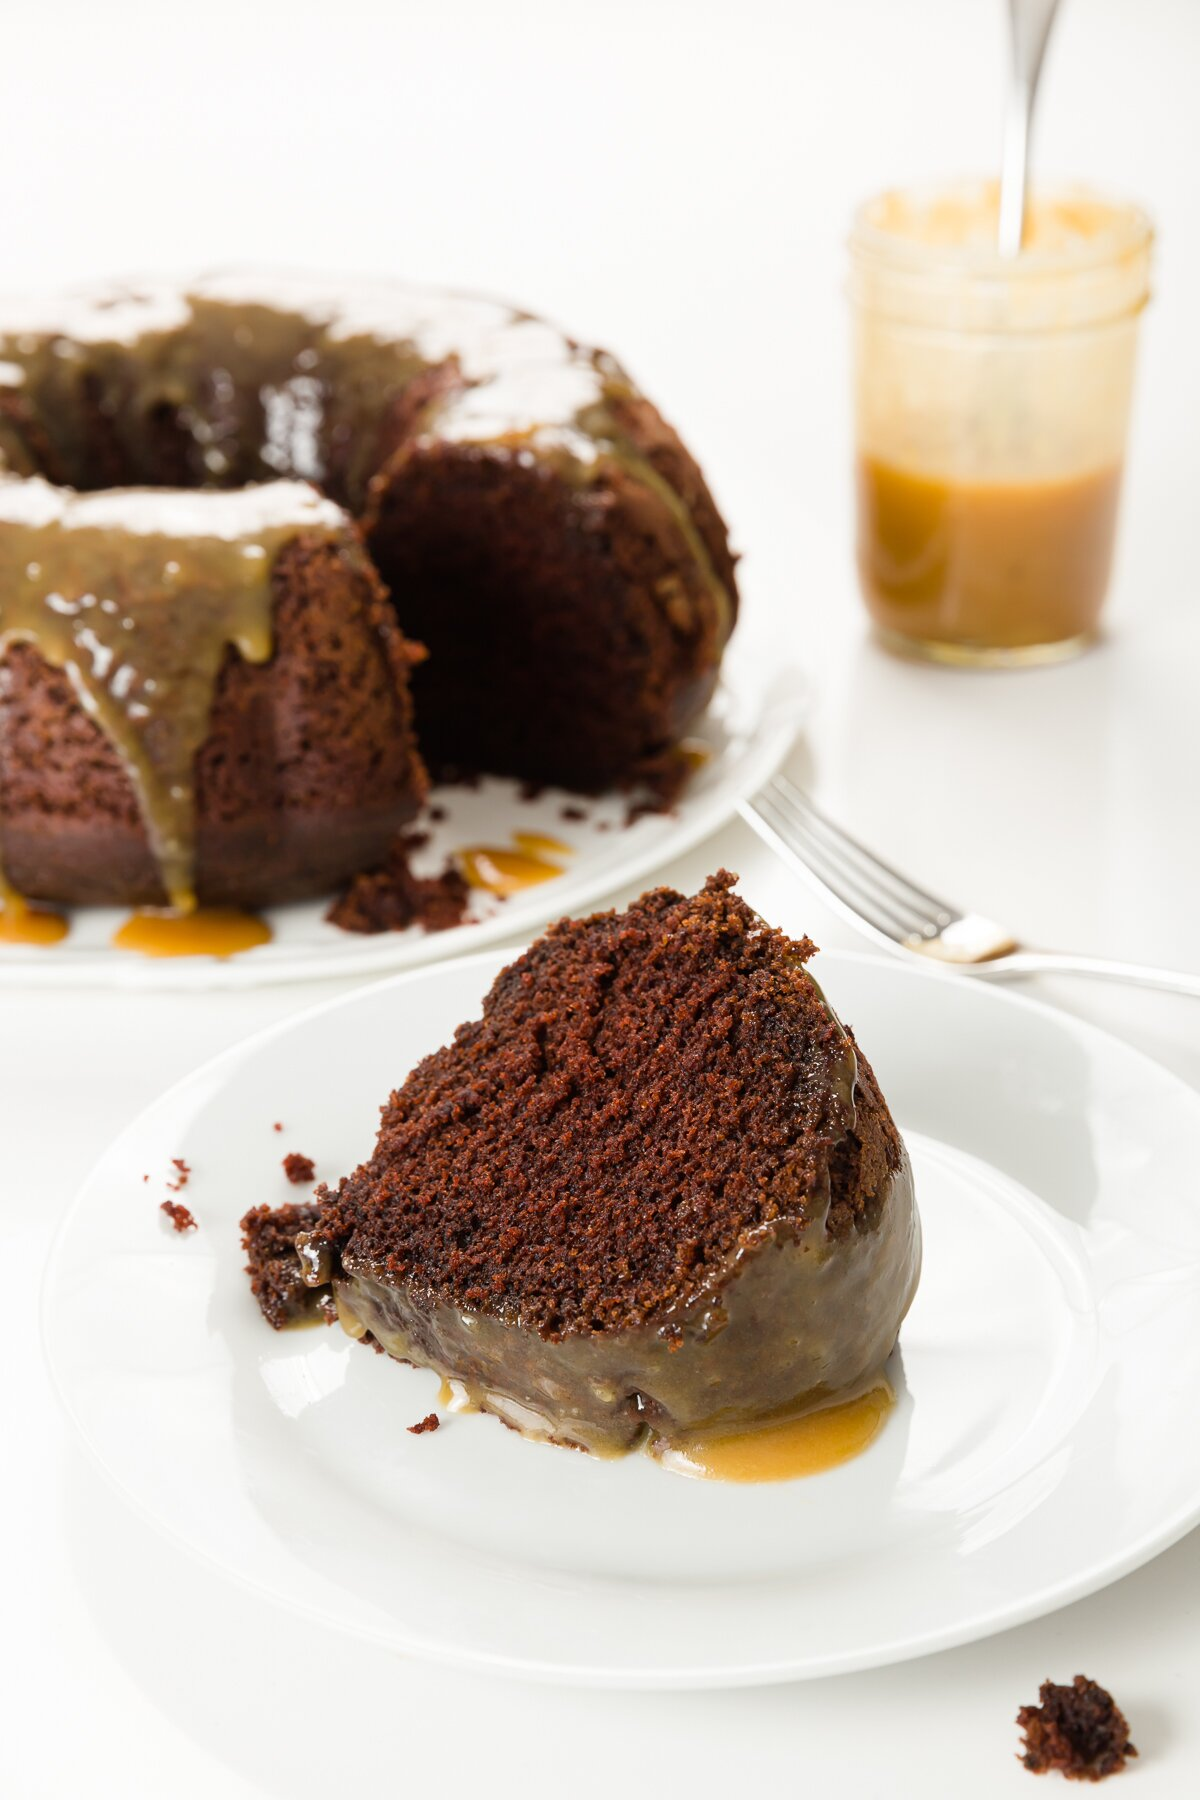 Slice of chocolate whiskey cake with Bundt cake and jar of whiskey sauce in the background